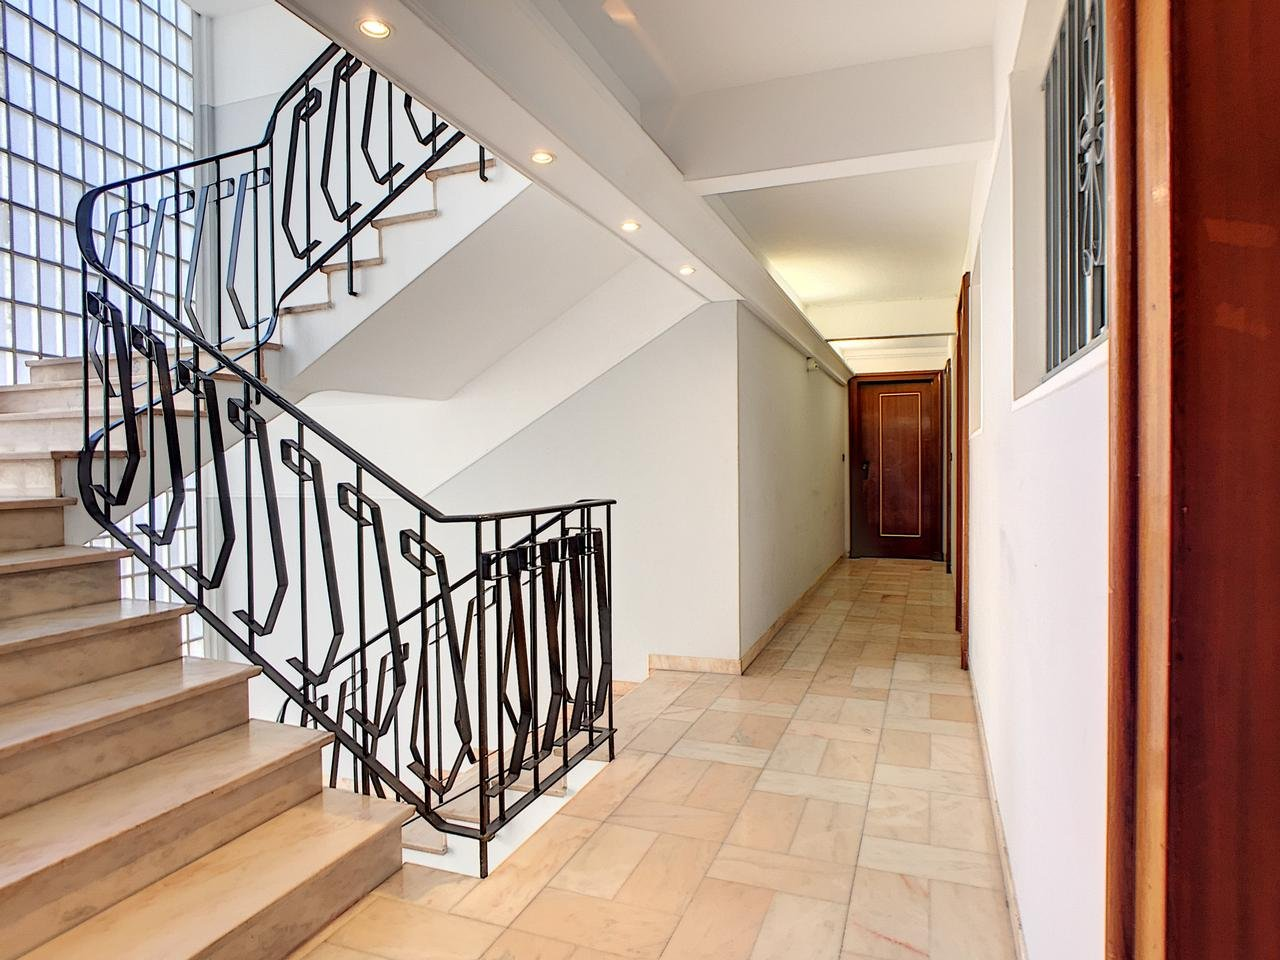 Appartement  2 Rooms 54.11m2  for sale   449 000 €